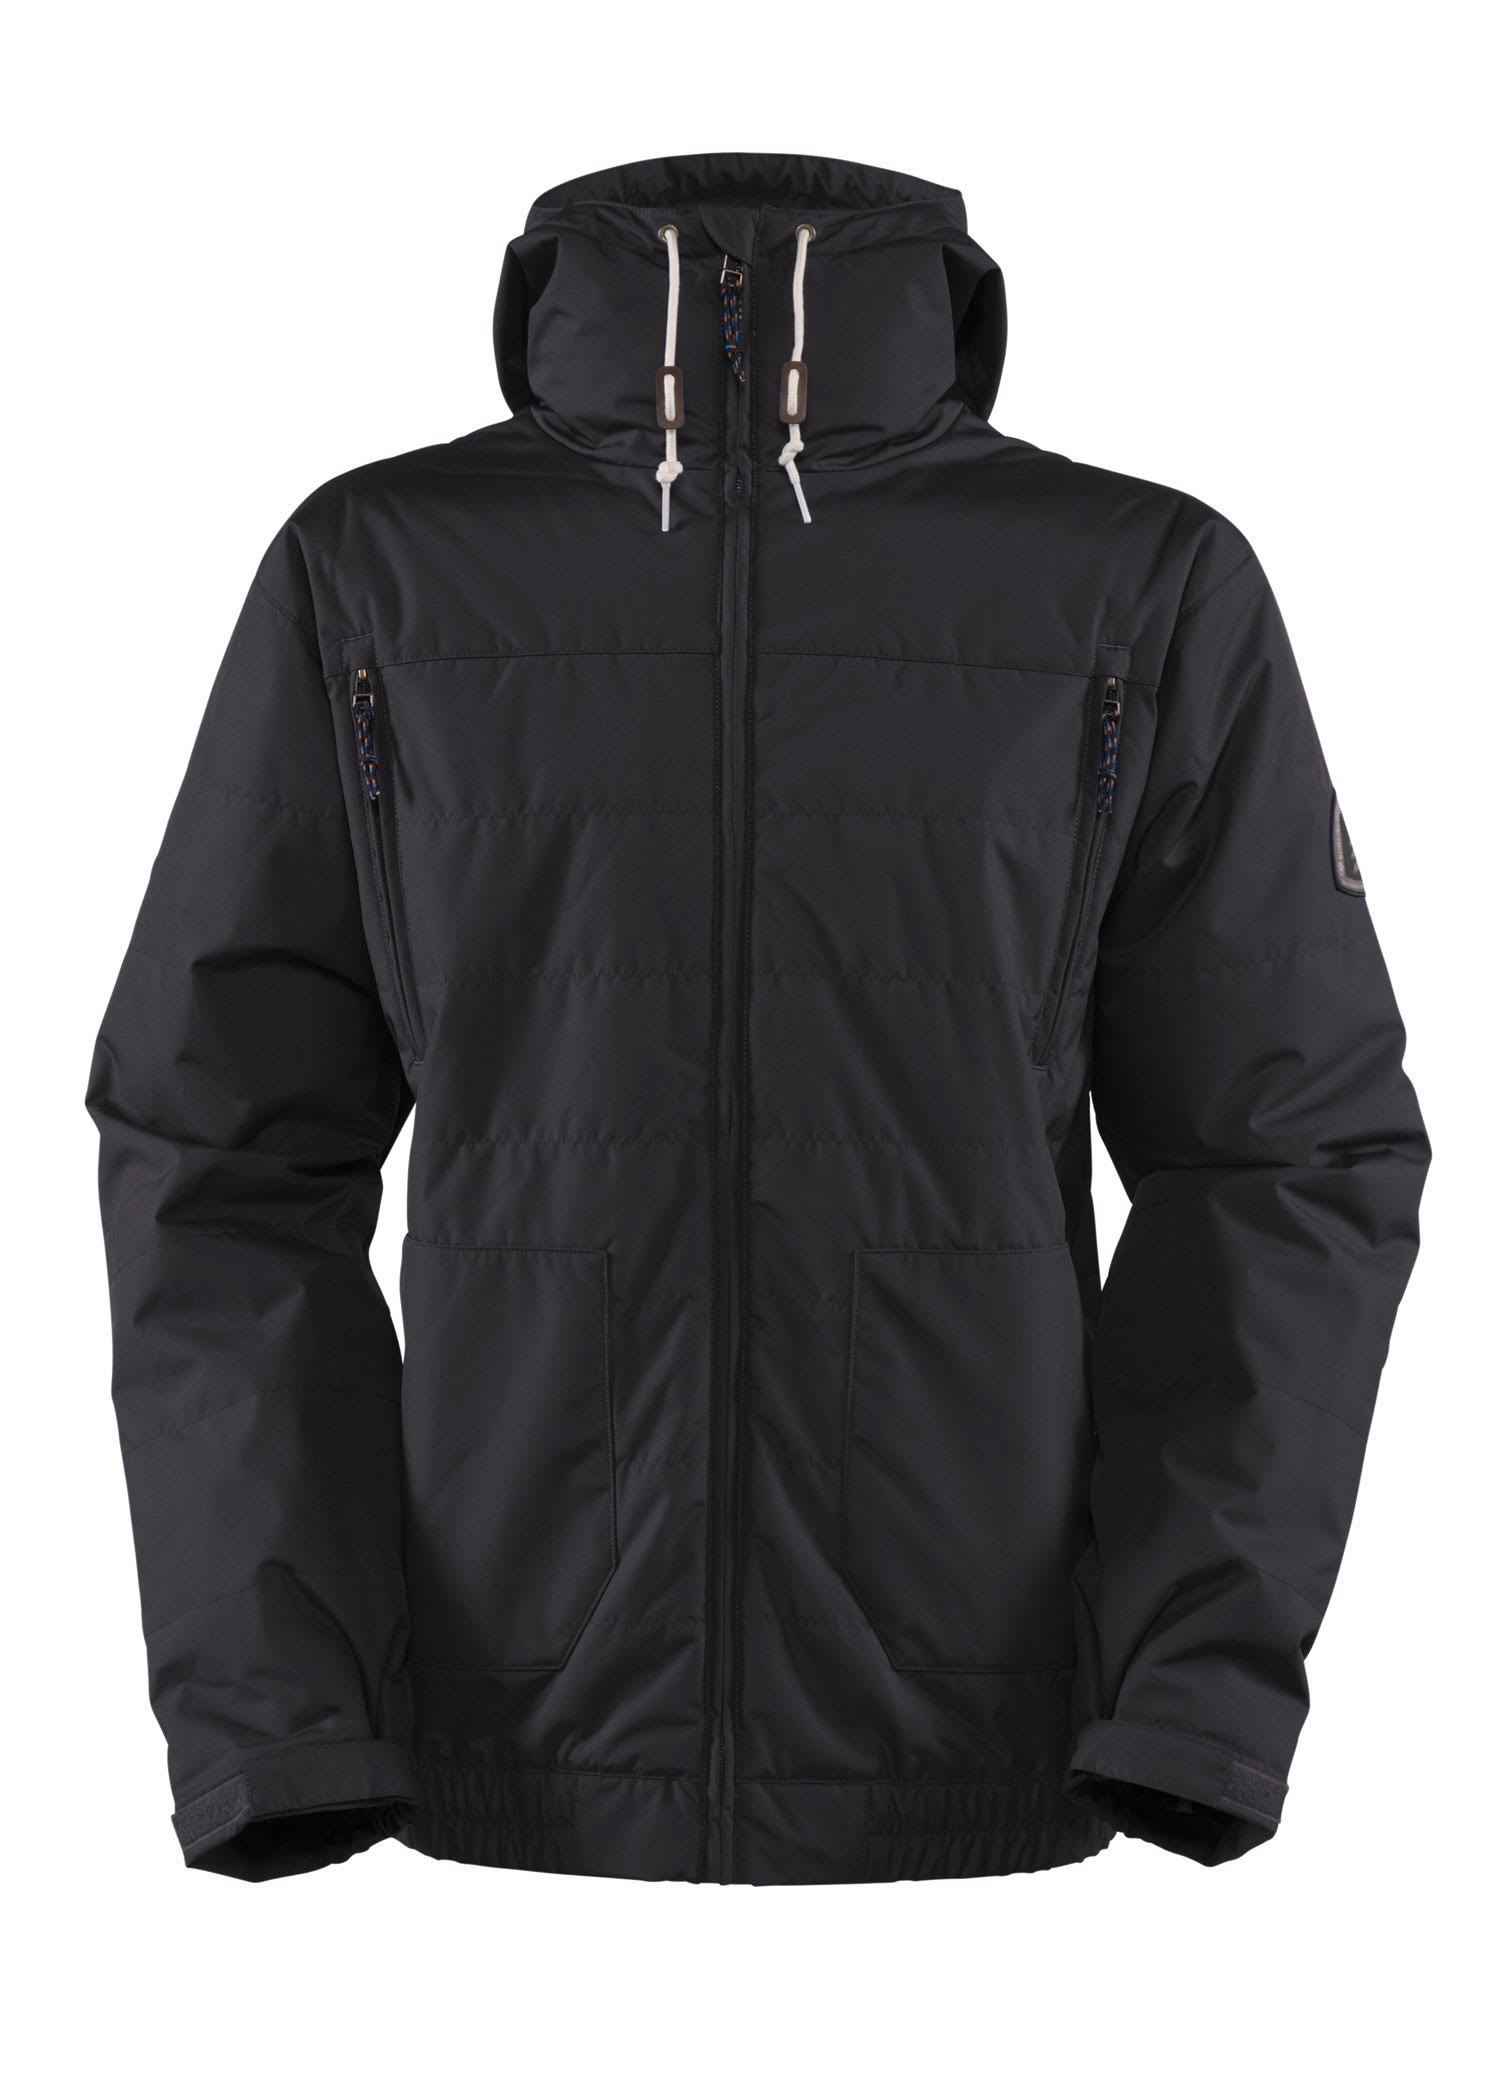 Bonfire Essential Awesome Snowboard Jacket Black - Men's